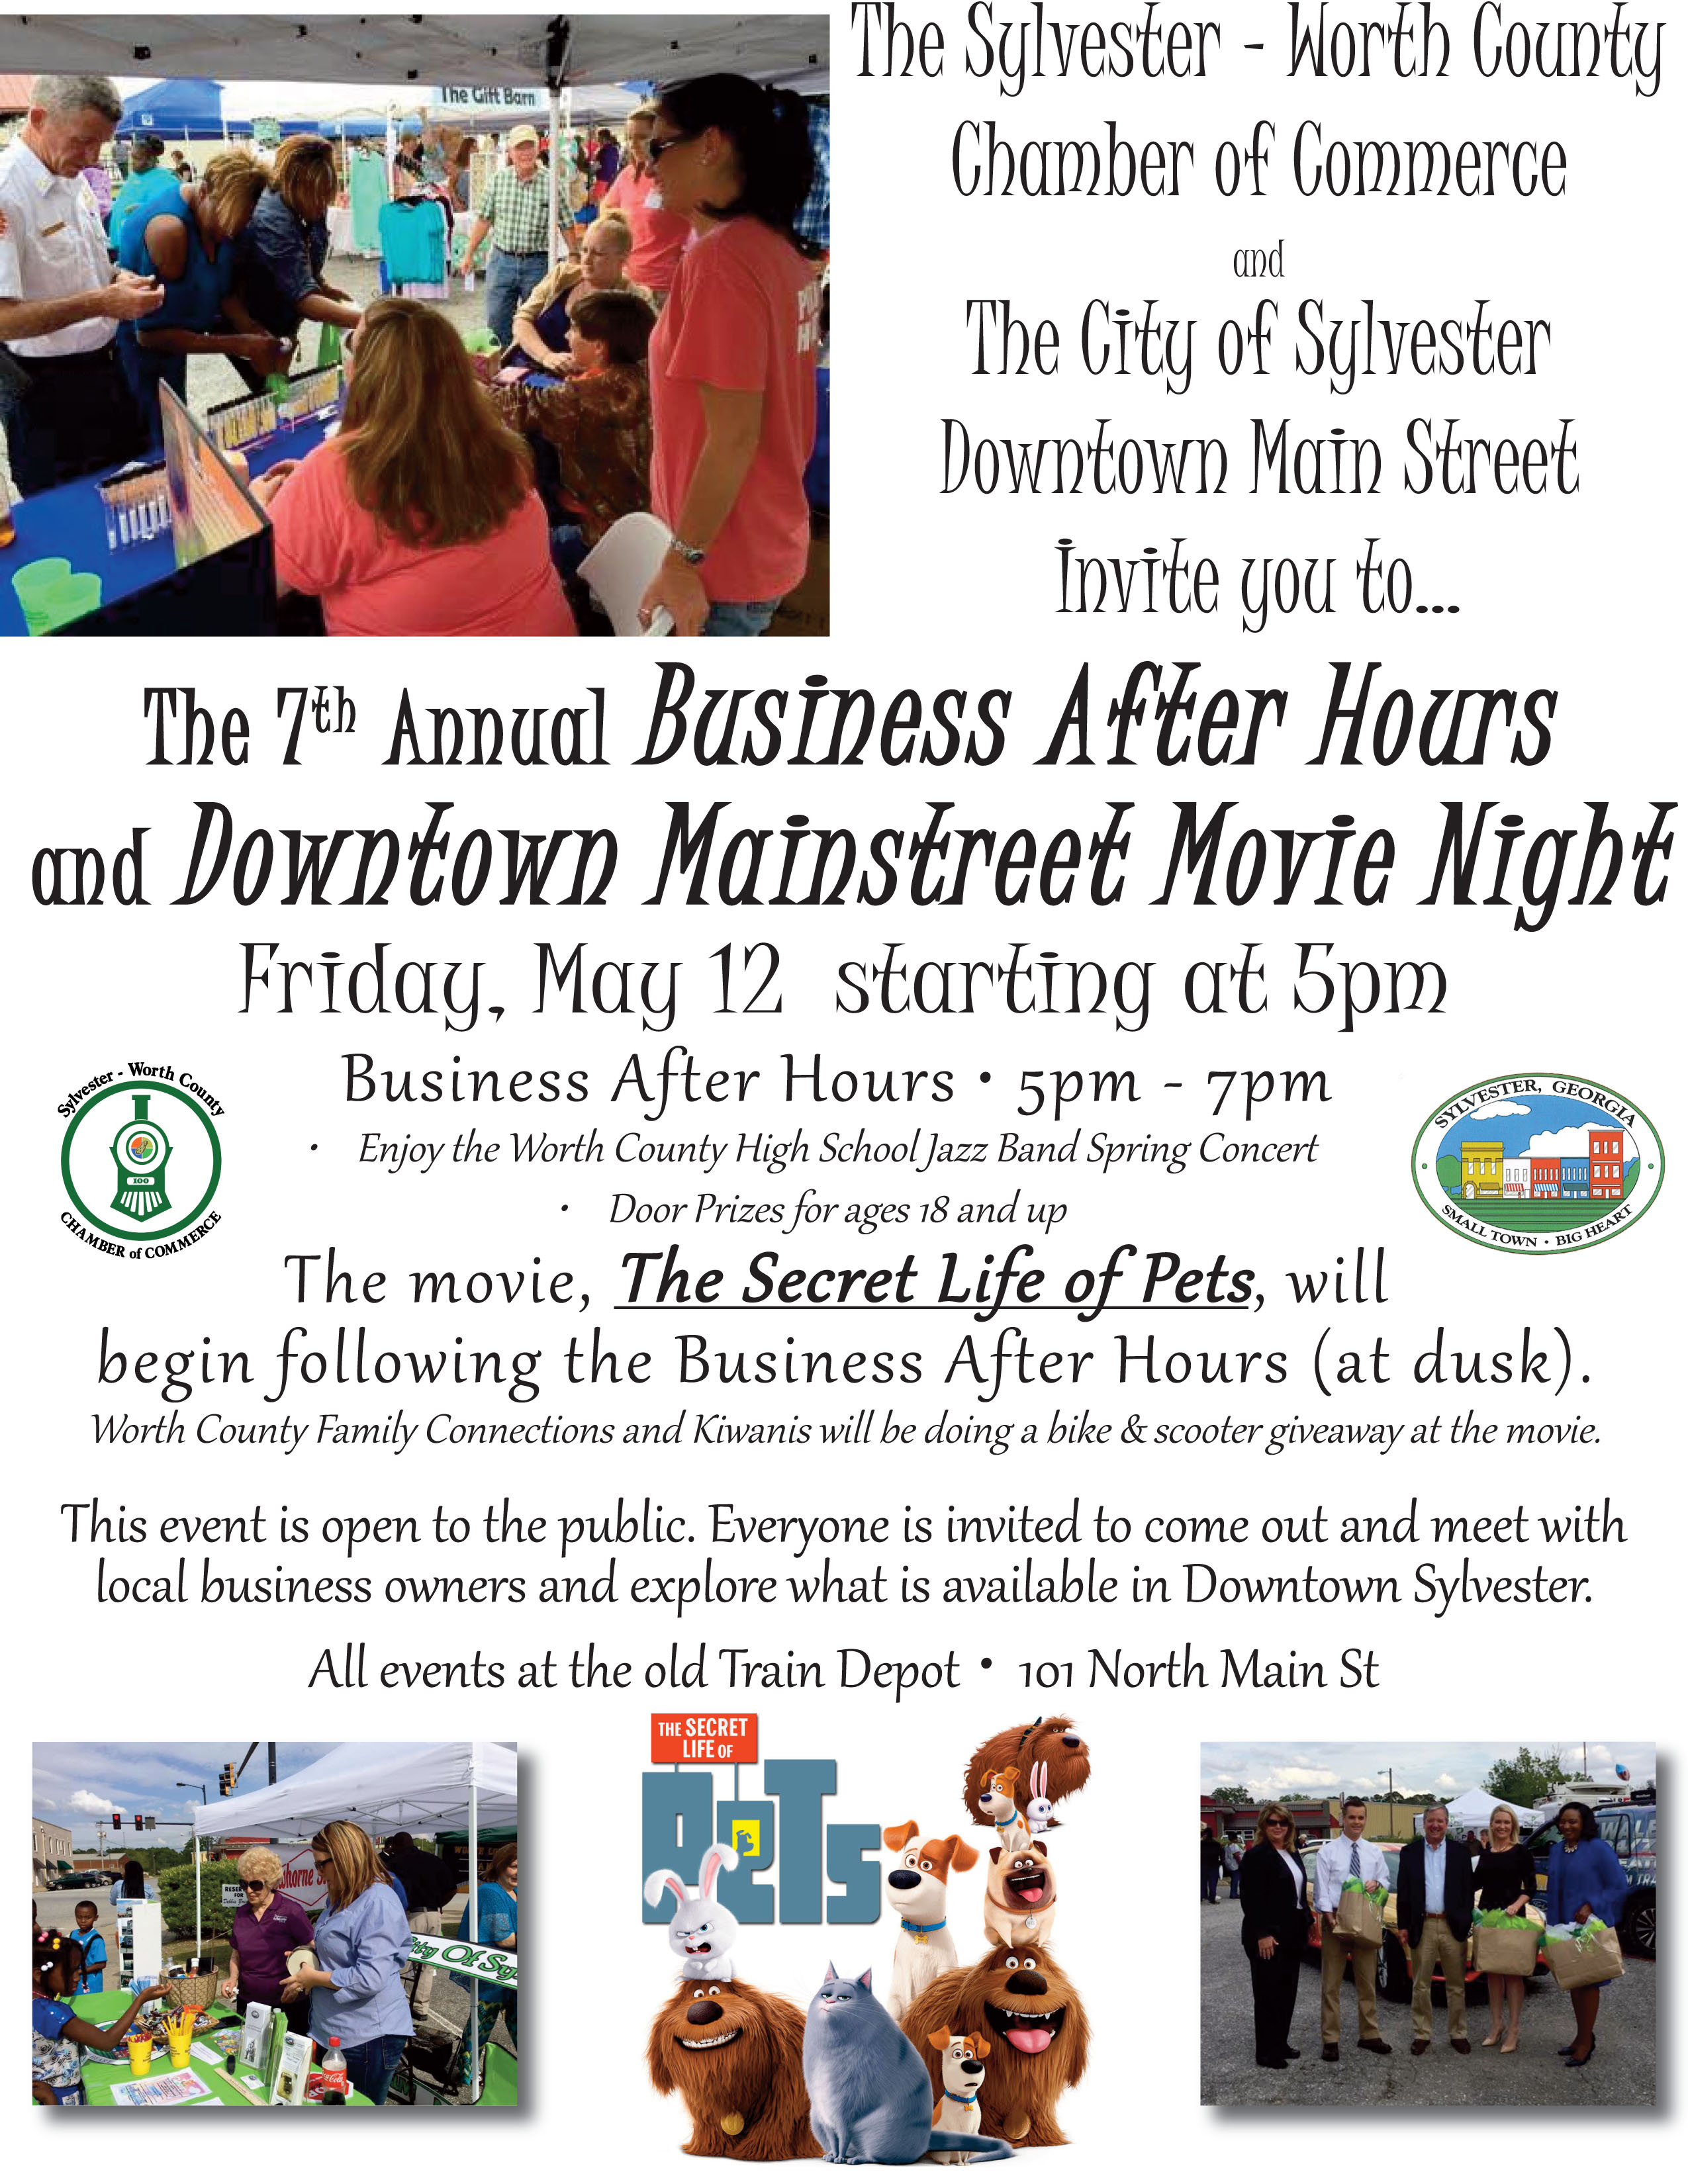 Business After Hours & Downtown Mainstreet Movie Night